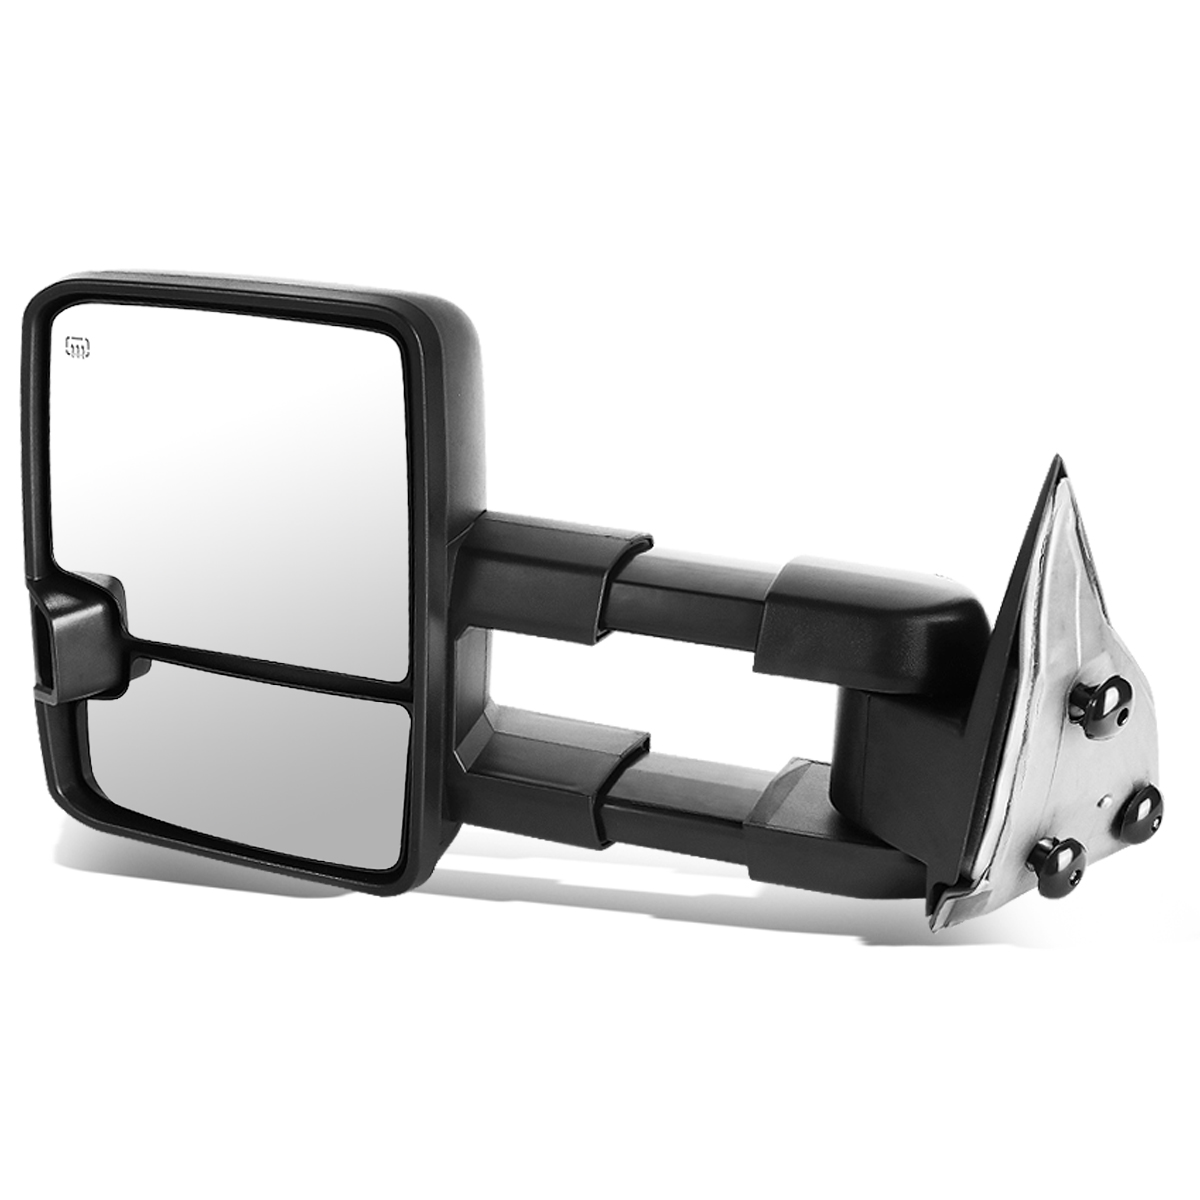 For 2007-2013 Chevy Tahoe/GMC Yukon Powered+Heated+Smoked LED Turn Signal Towing Mirror (Left/Driver)